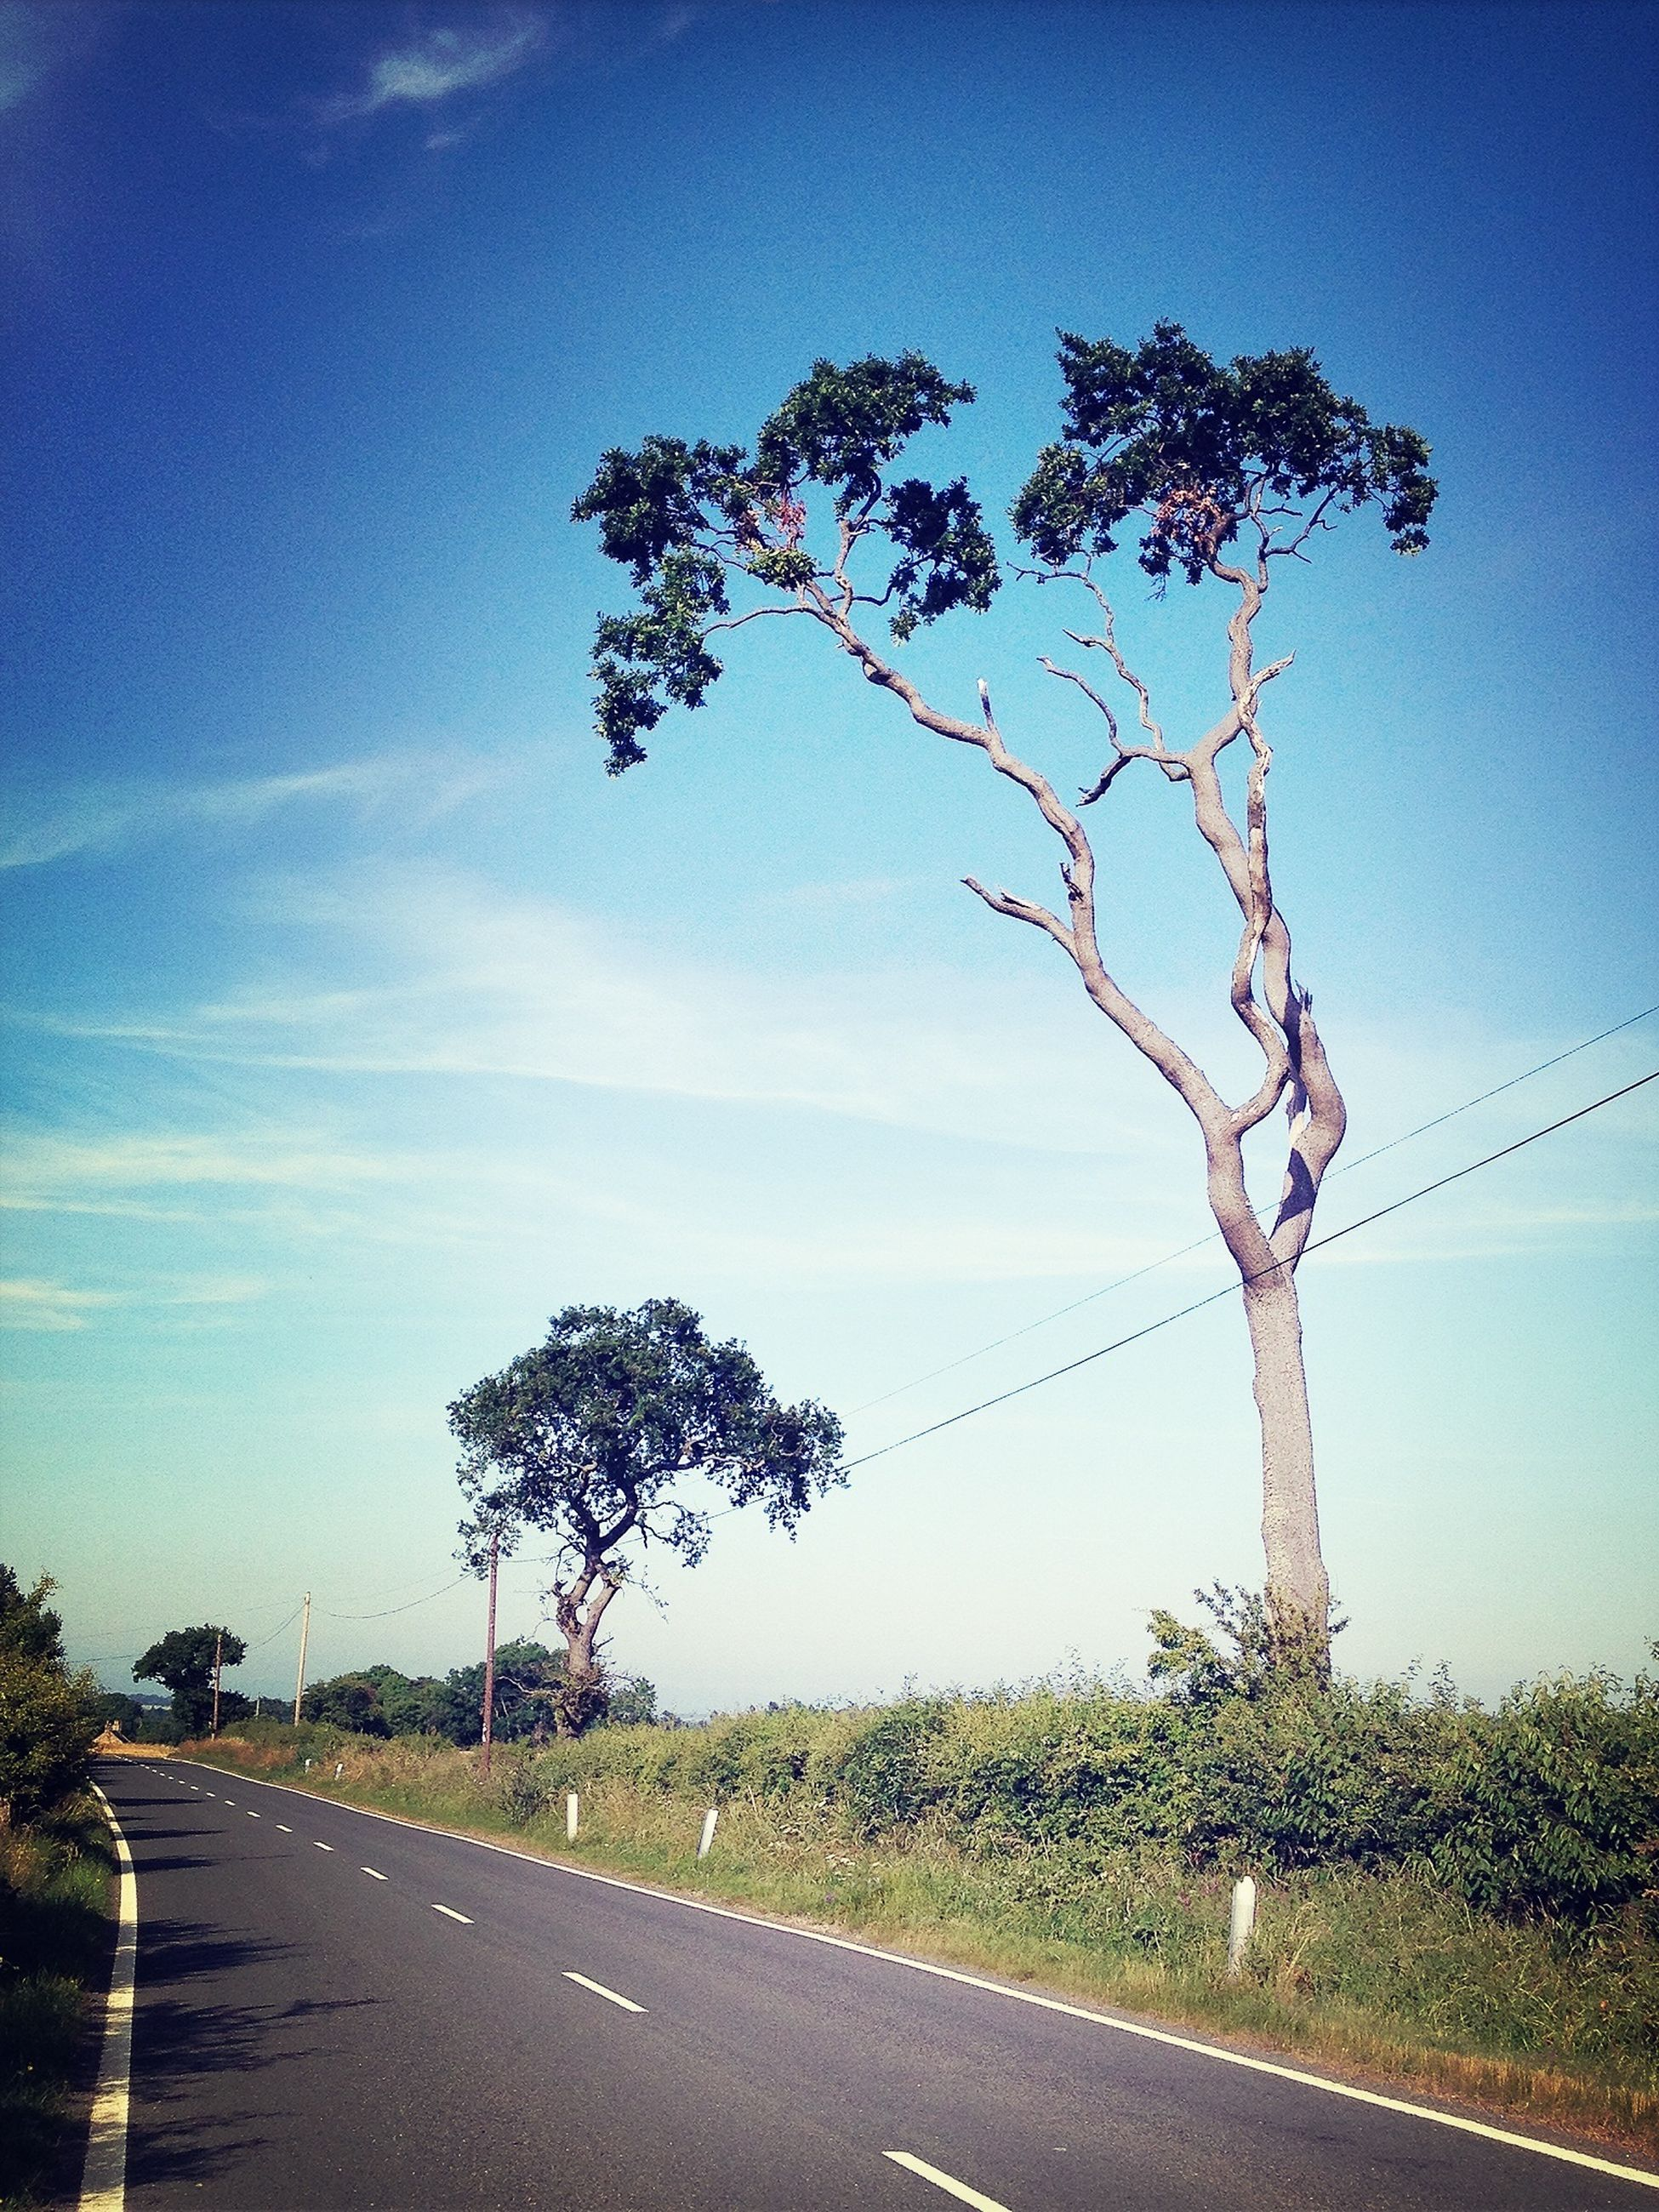 tree, road, transportation, the way forward, sky, country road, road marking, diminishing perspective, street, empty road, blue, tranquility, vanishing point, nature, growth, power line, bare tree, electricity pylon, connection, long